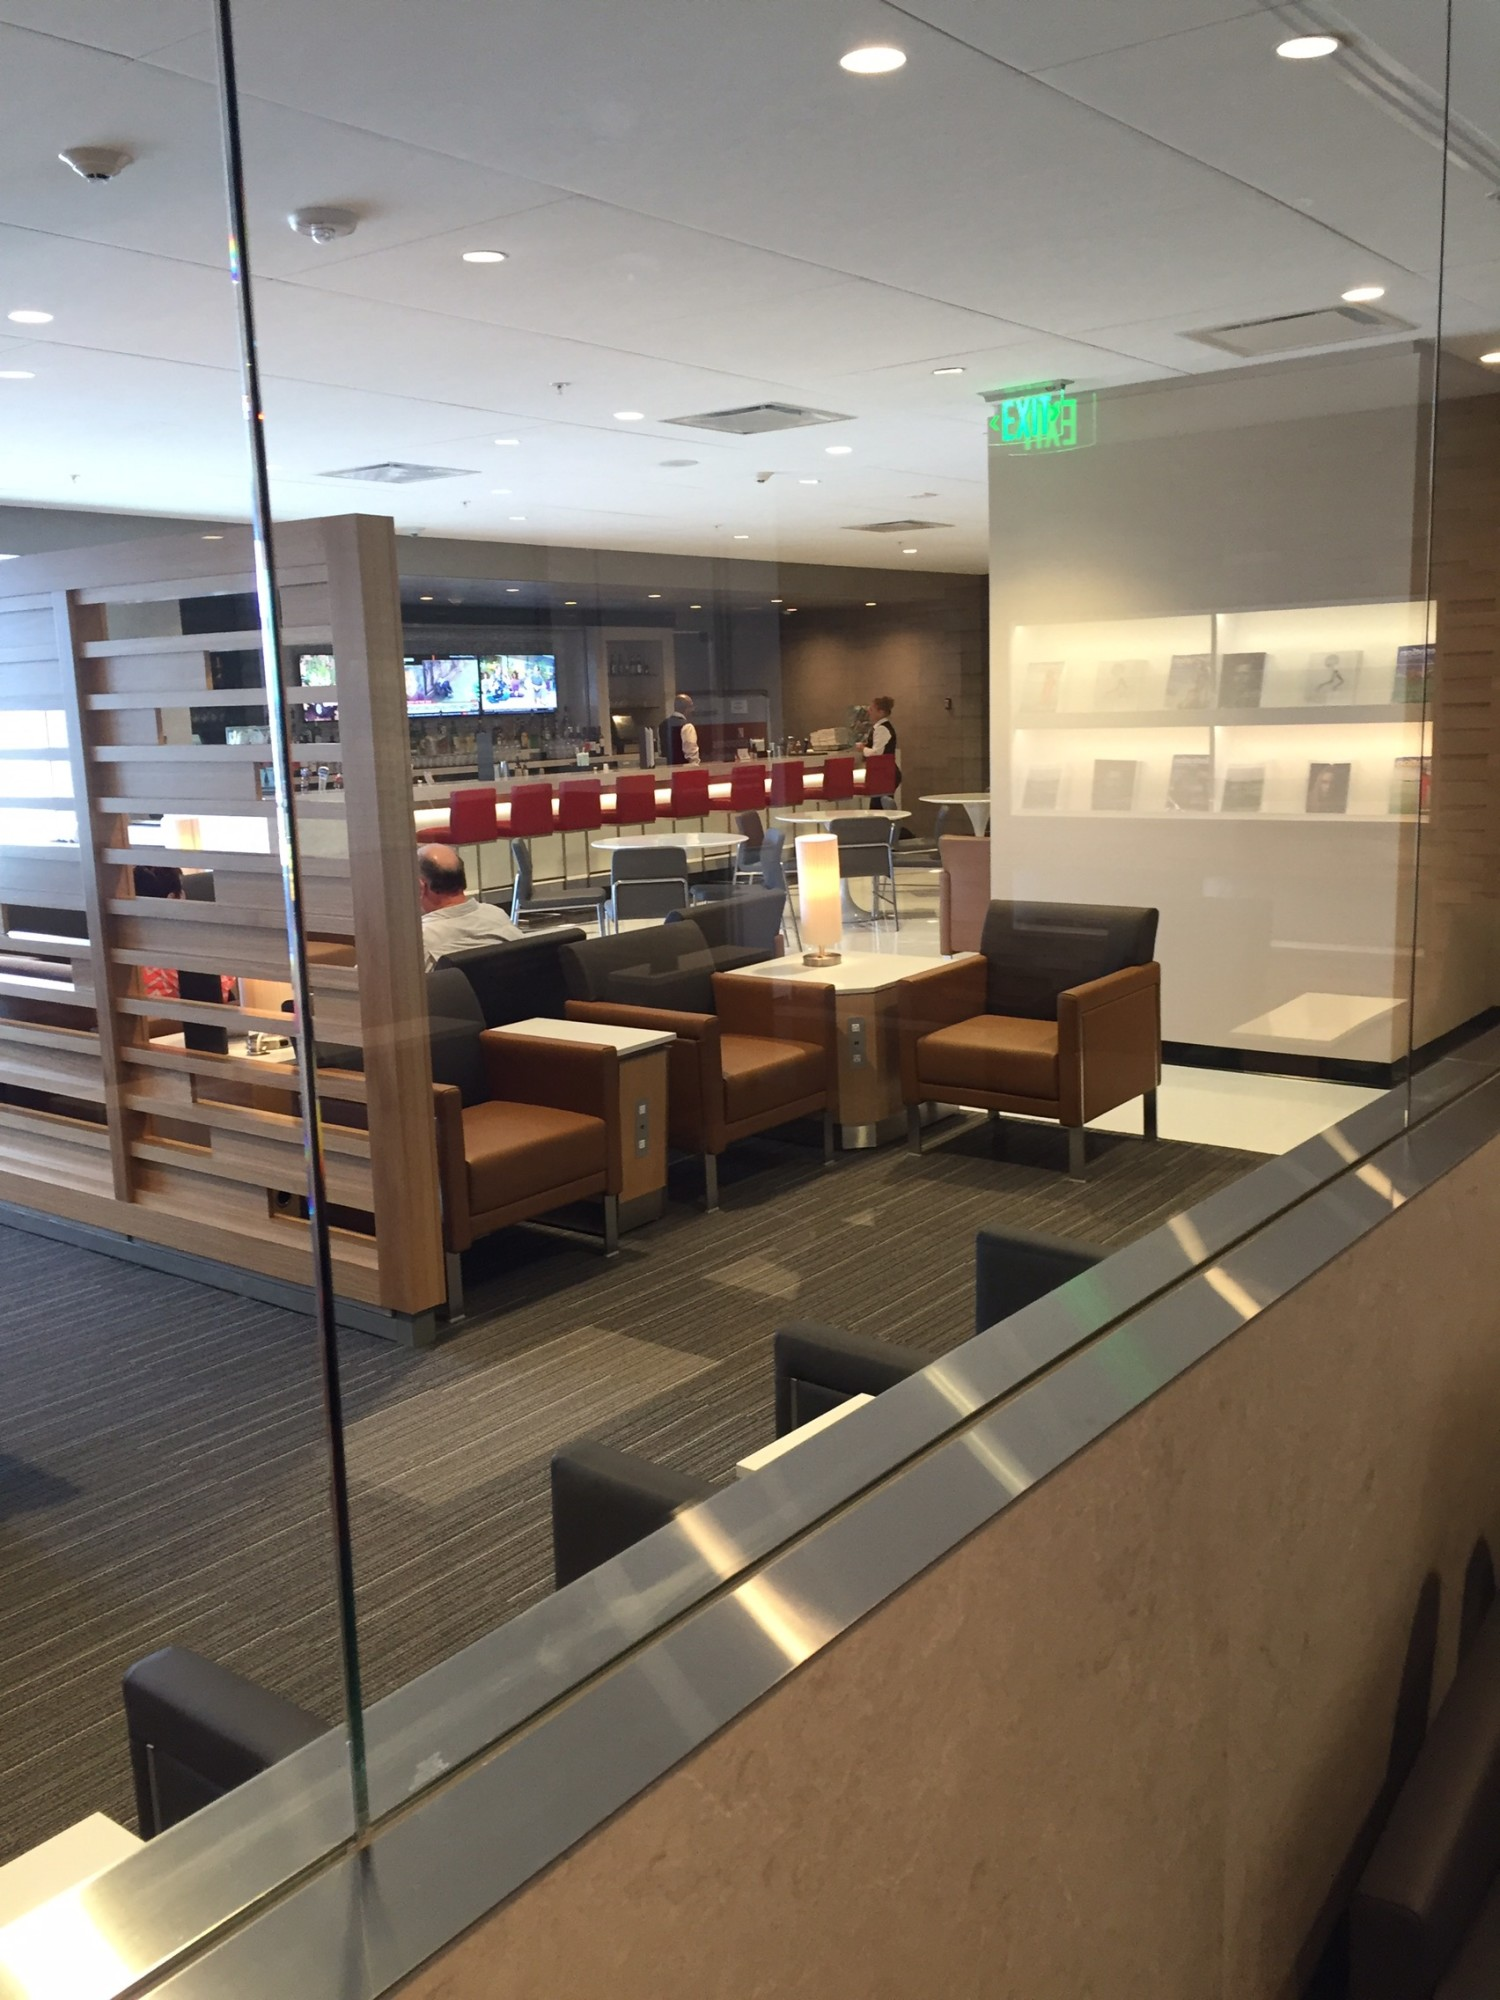 MIA American Airlines Admirals Club Gate D15 Reviews & s